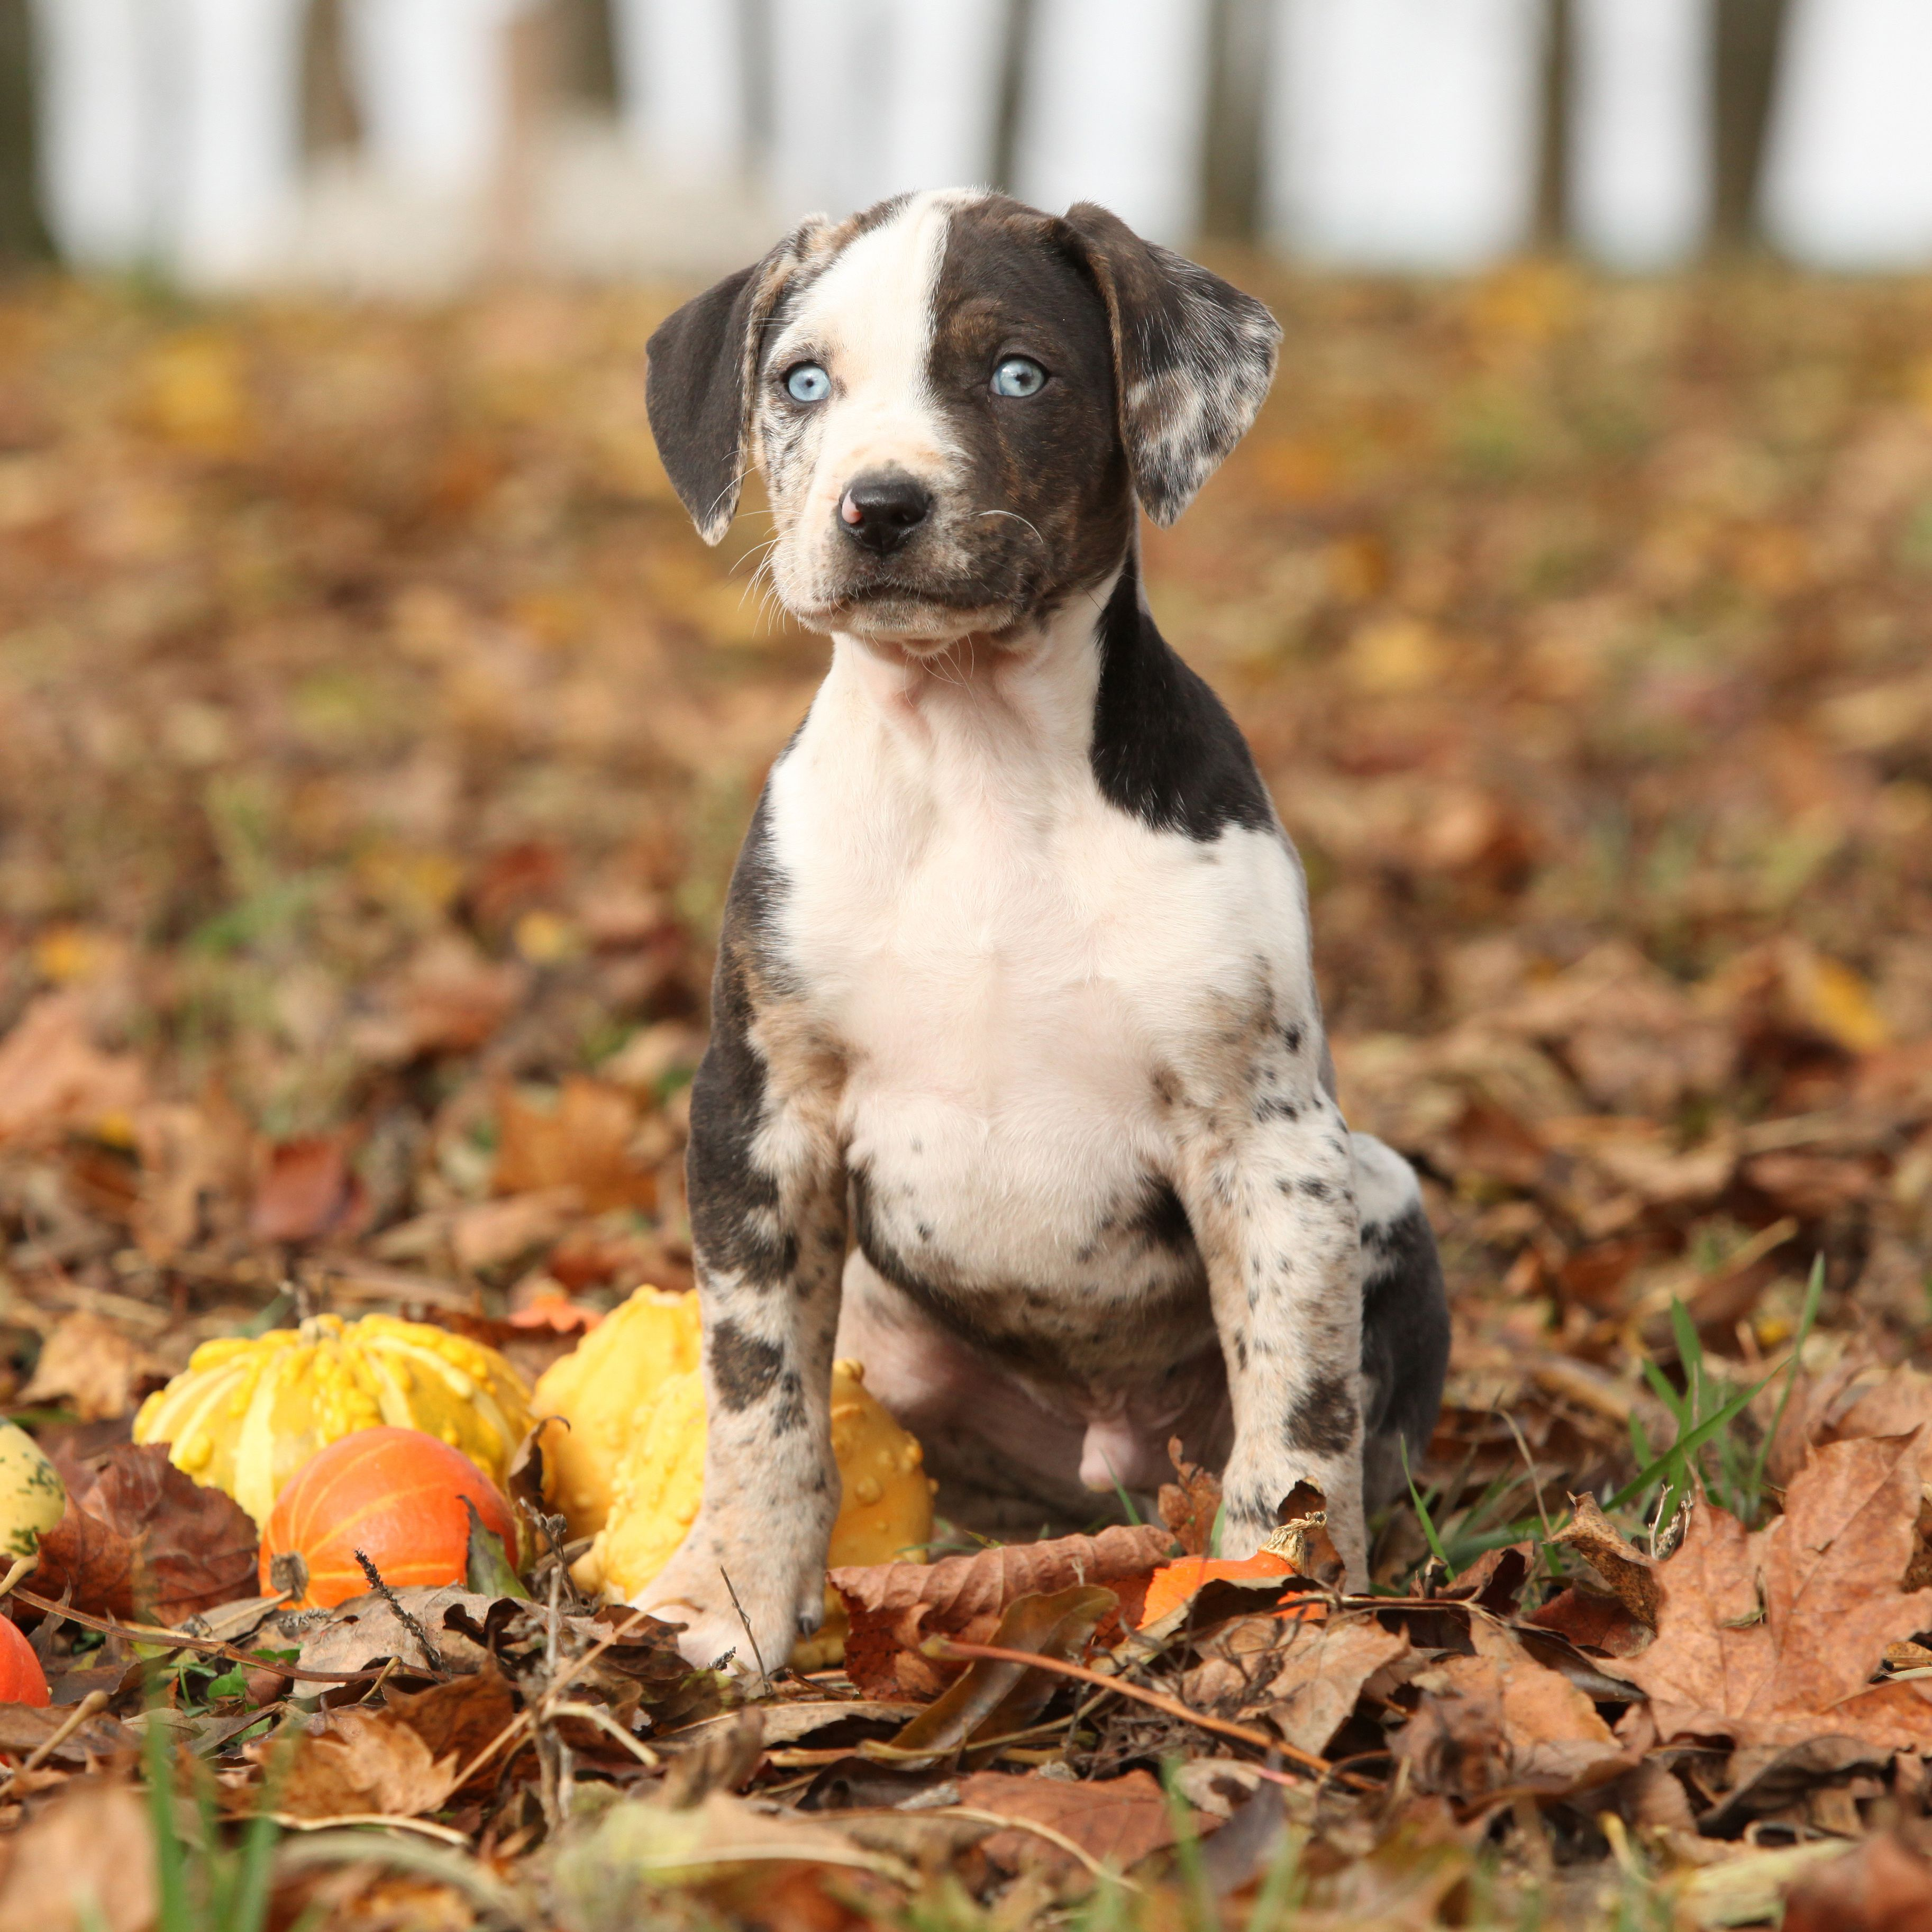 Did You Know That The Catahoula Leopard Dog Is One Of The Few Breeds That Are Native To The Unite Catahoula Leopard Dog Leopard Dog Catahoula Leopard Dog Facts